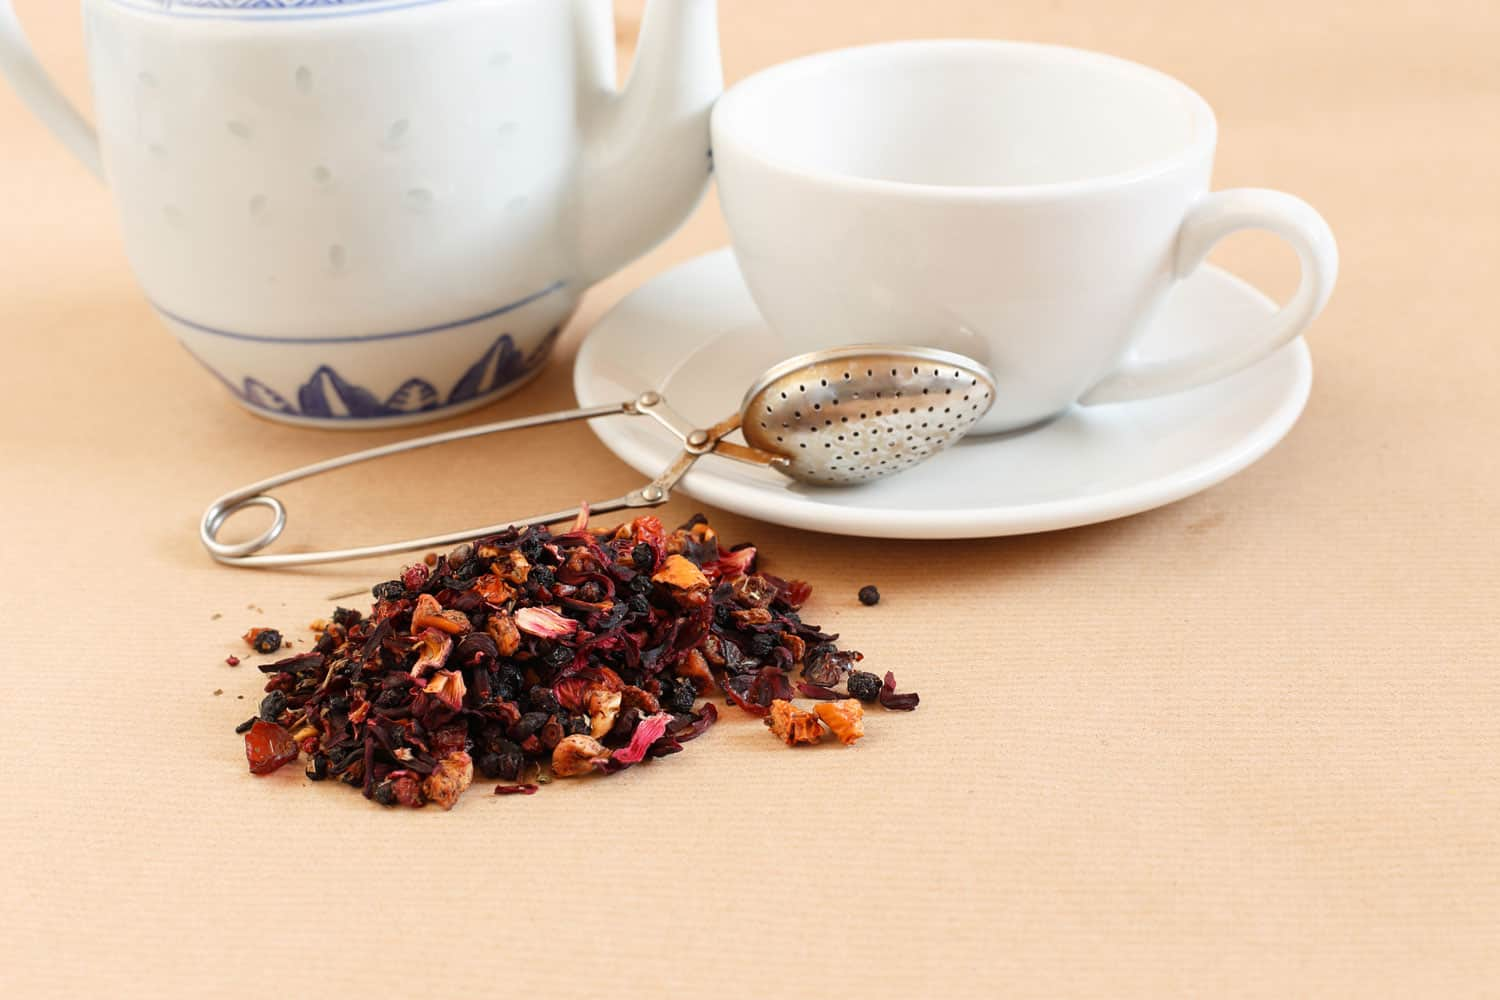 Teapot, tea cup and tea leaves ready to prepare a refreshing drink